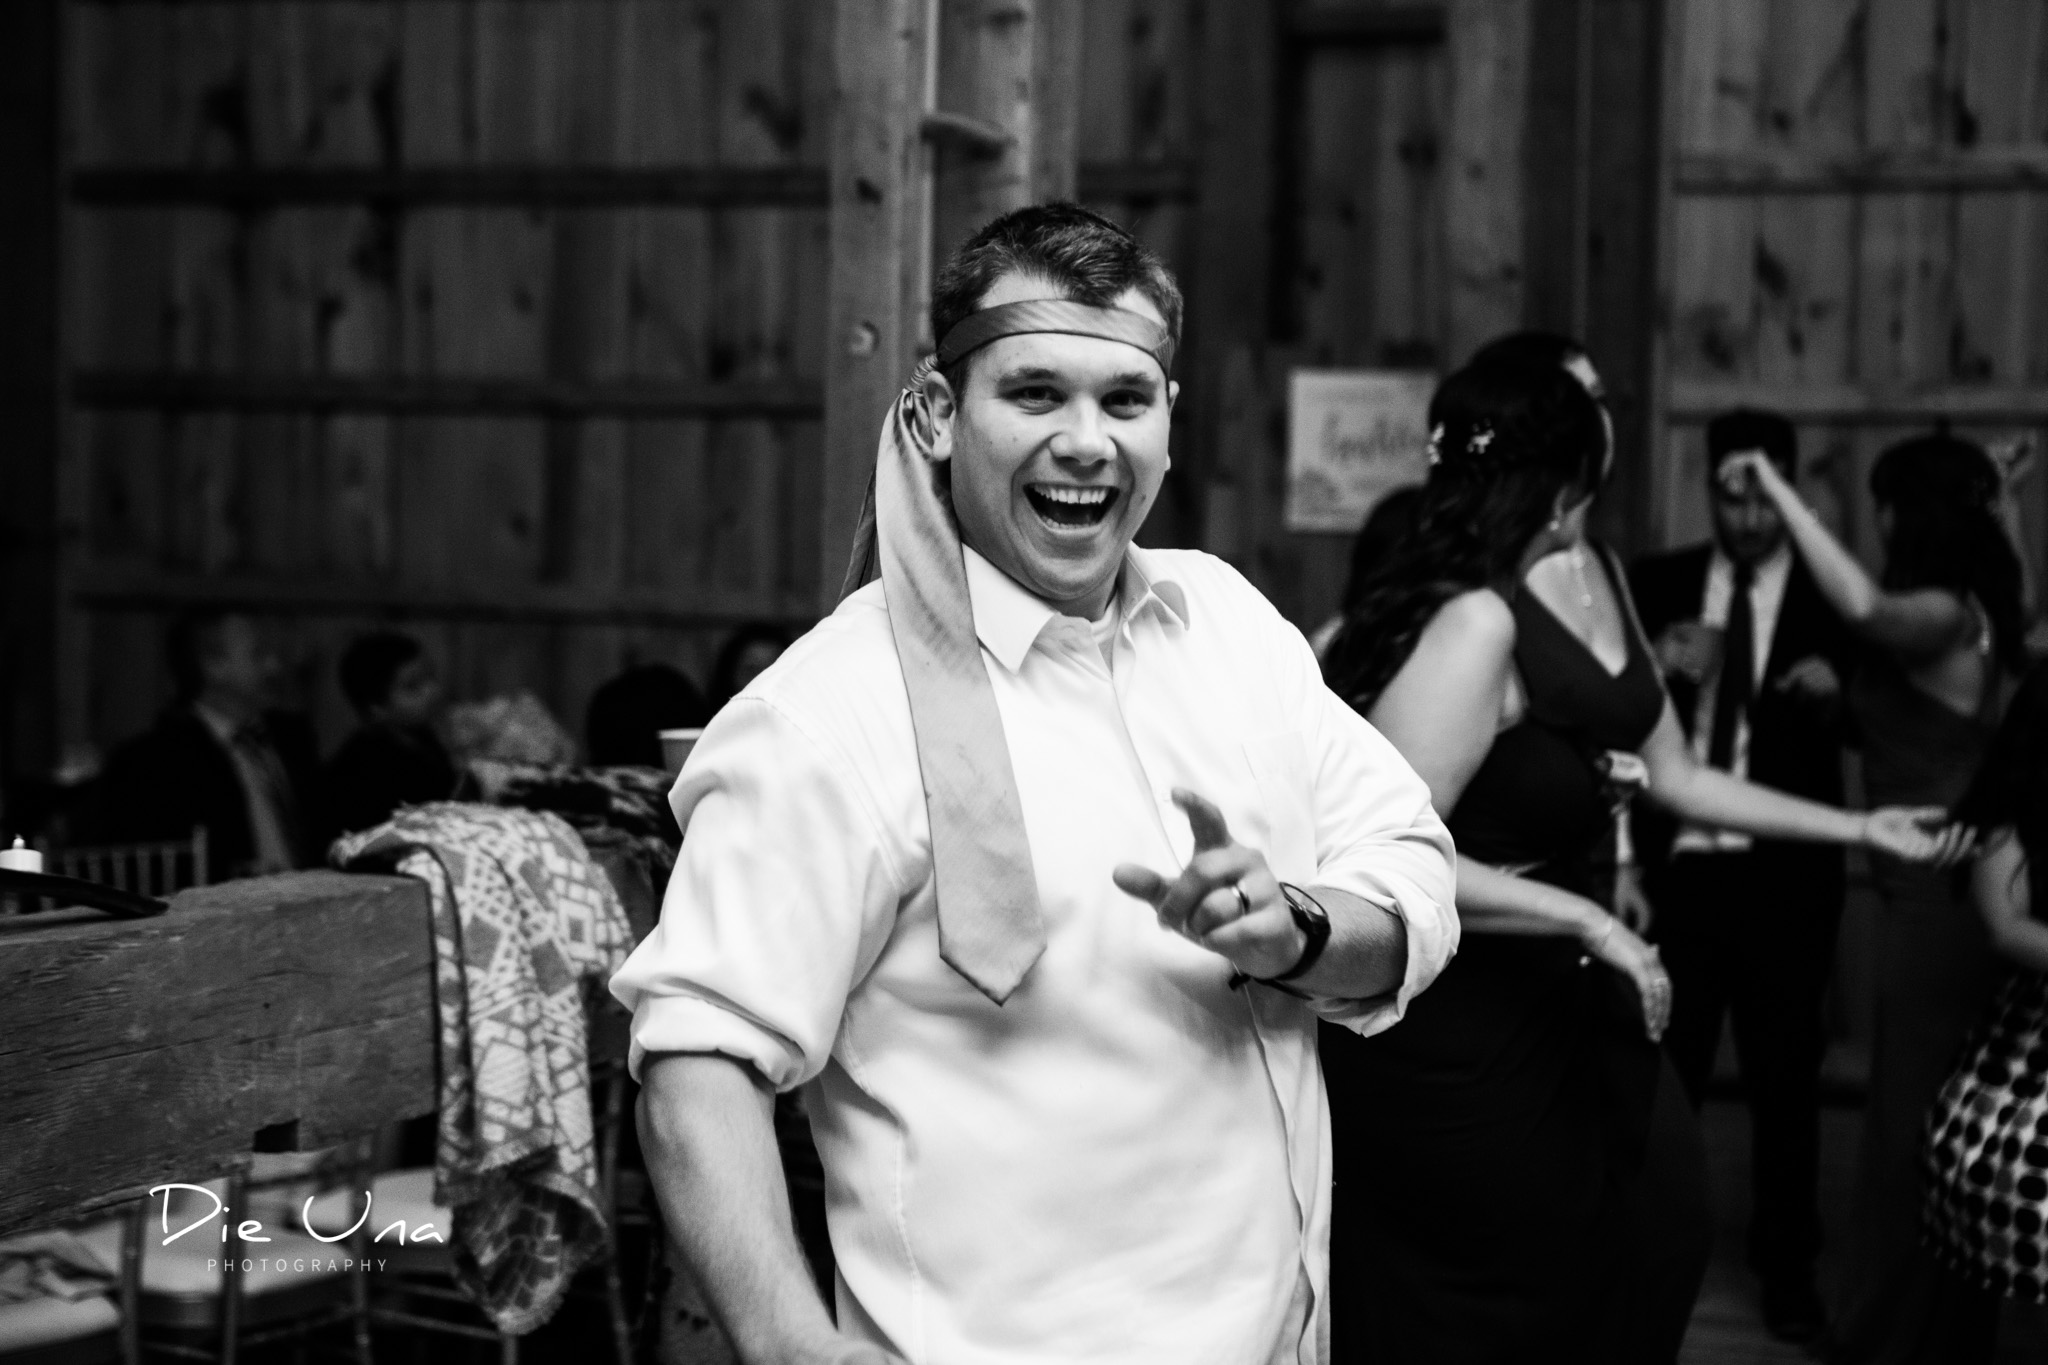 wedding guest wearing tie around his head black and white wedding photography.jpg